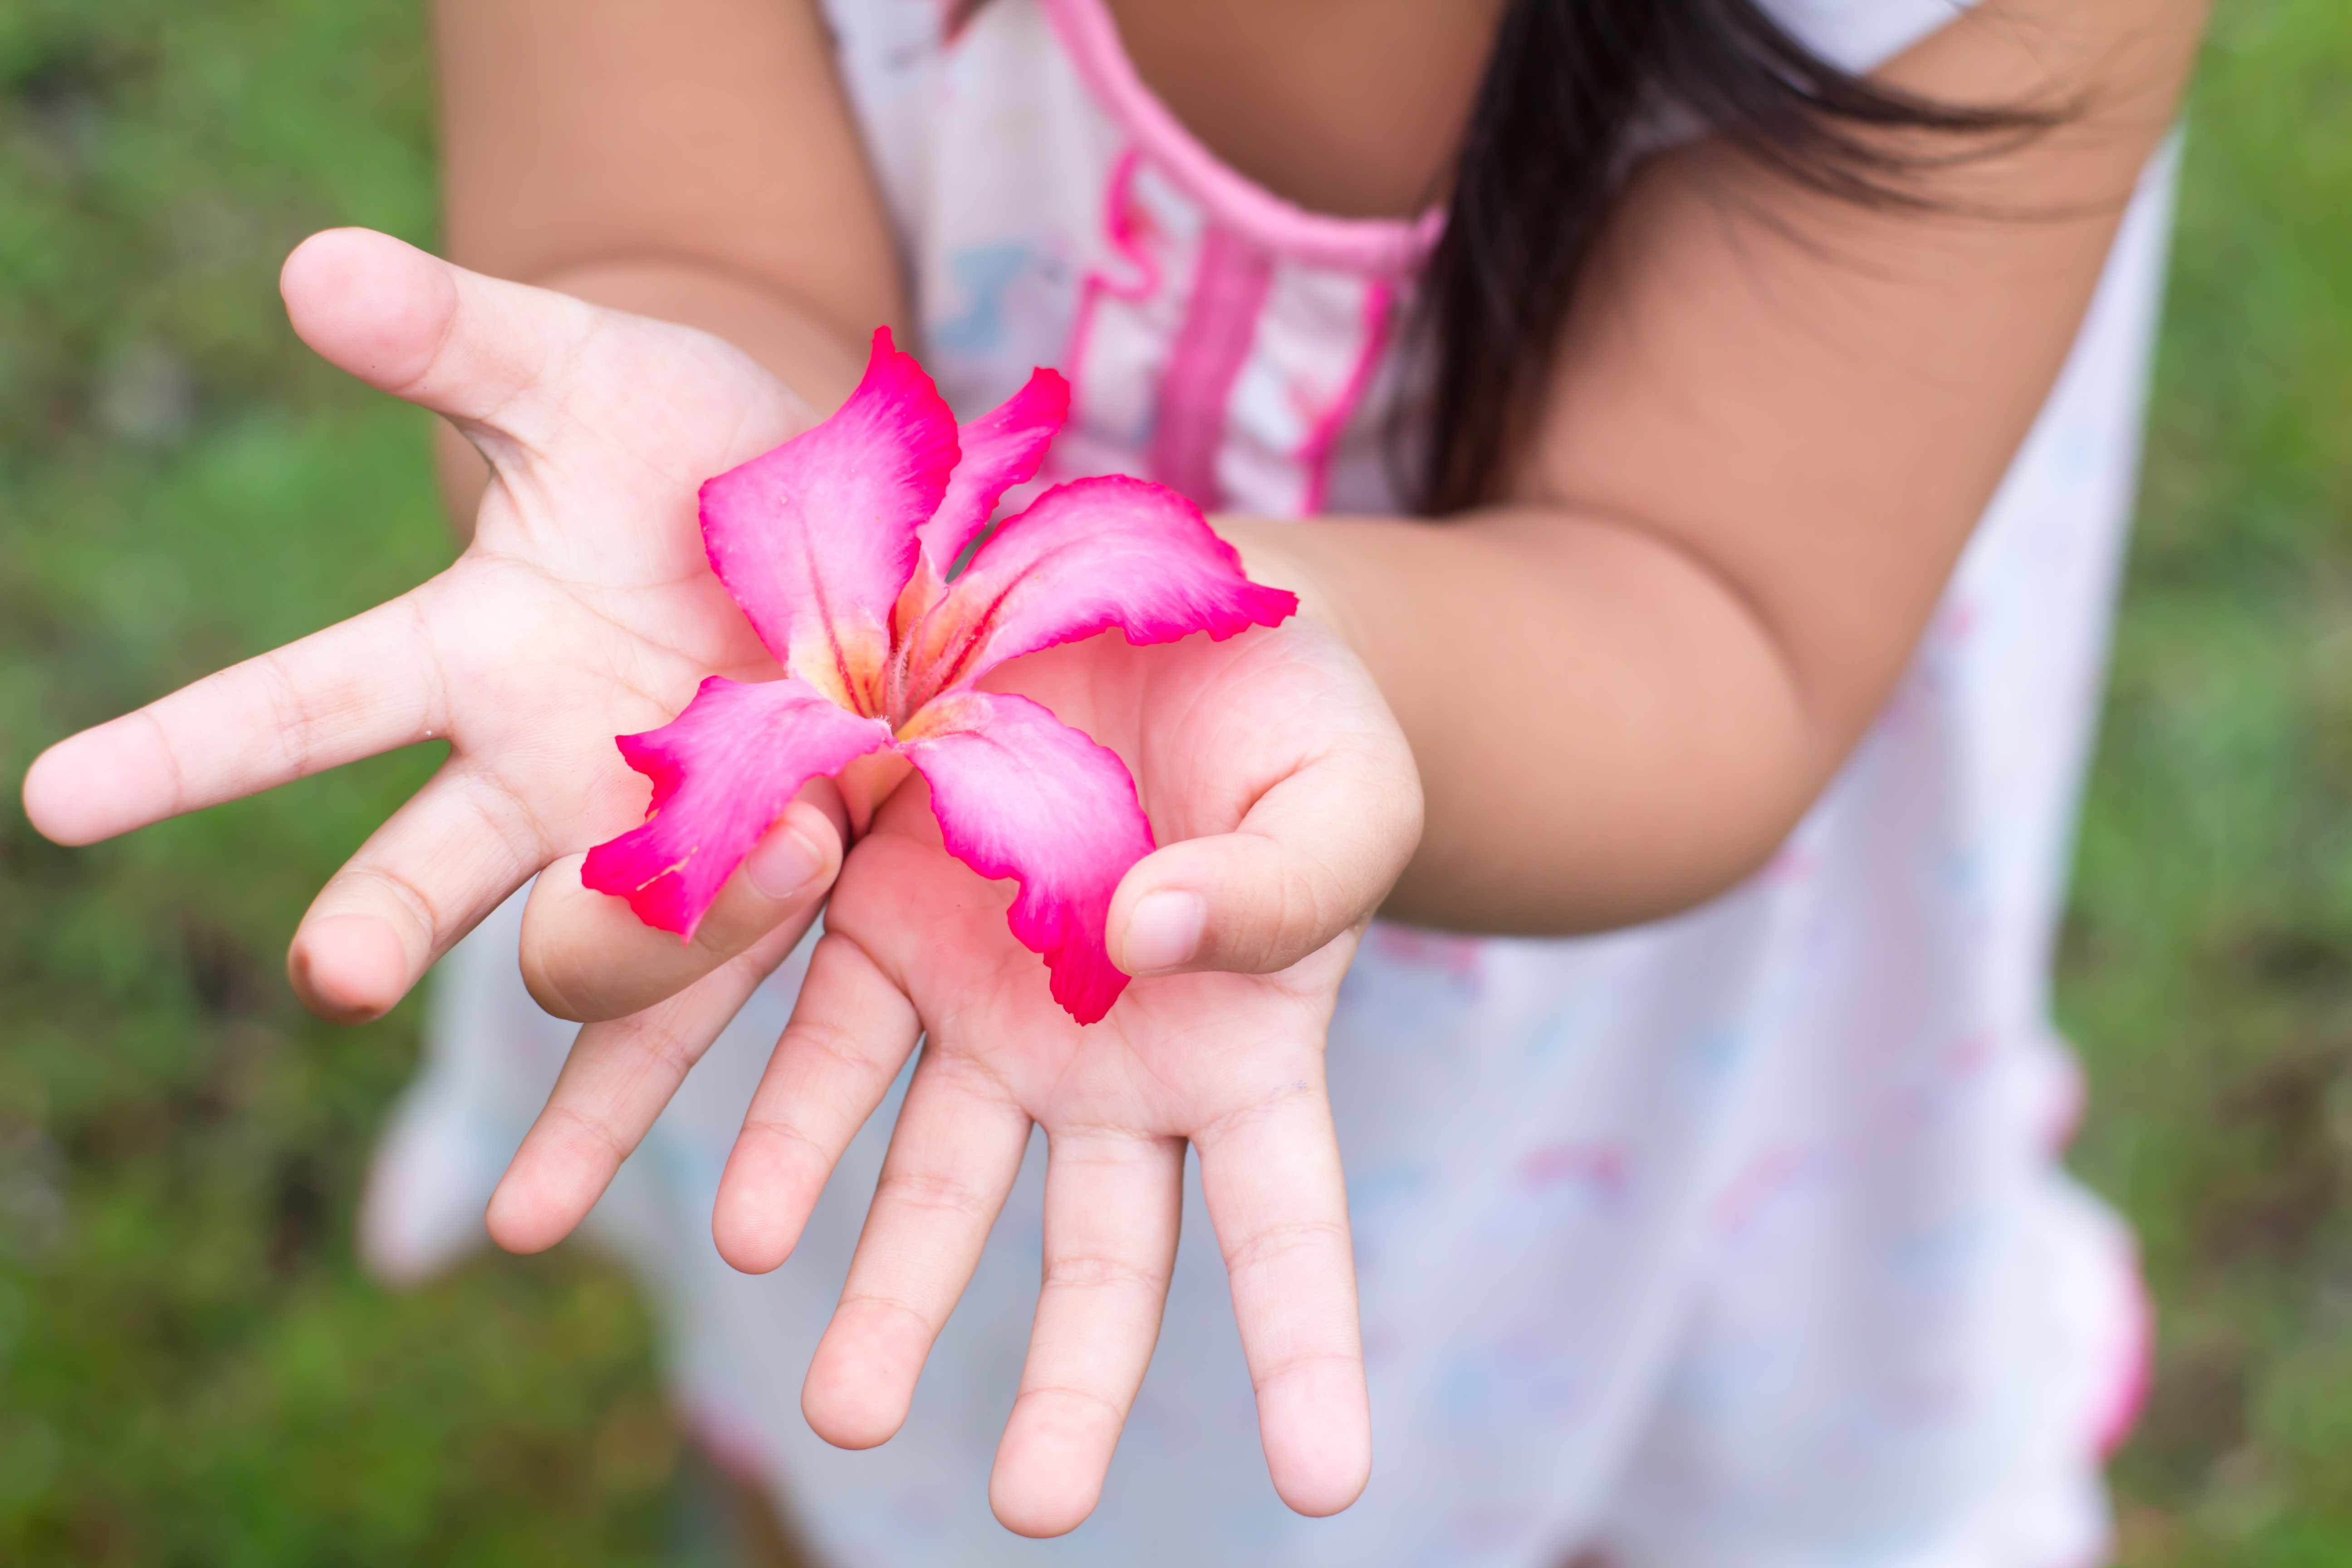 a young girl gently holding a bright pink flower in her hands and offering it like a gift